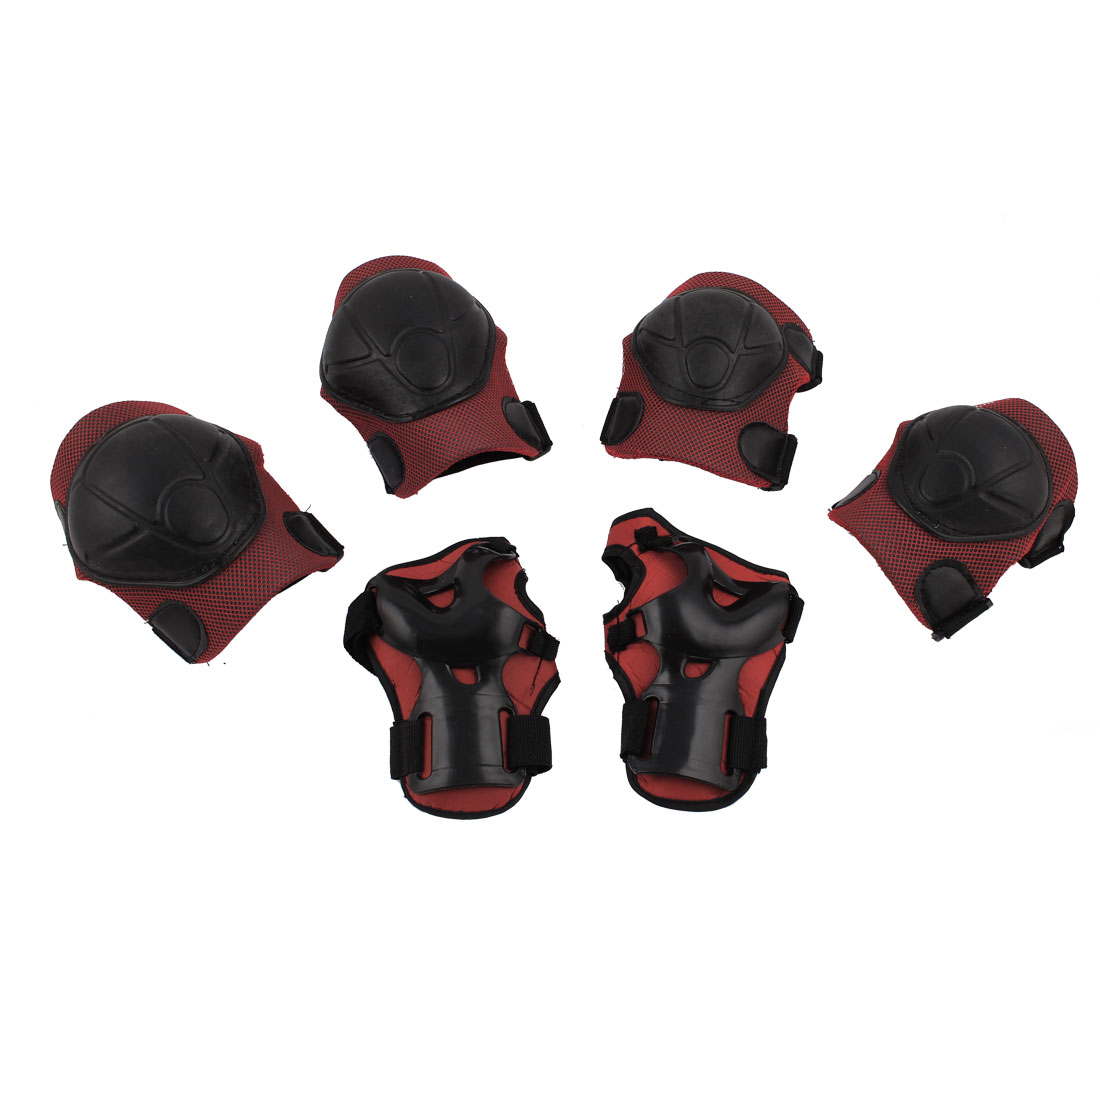 Outdoor Sports Skiing Skating Palm Elbow Knee Support Guard Pad Protector Set Red 6 in 1